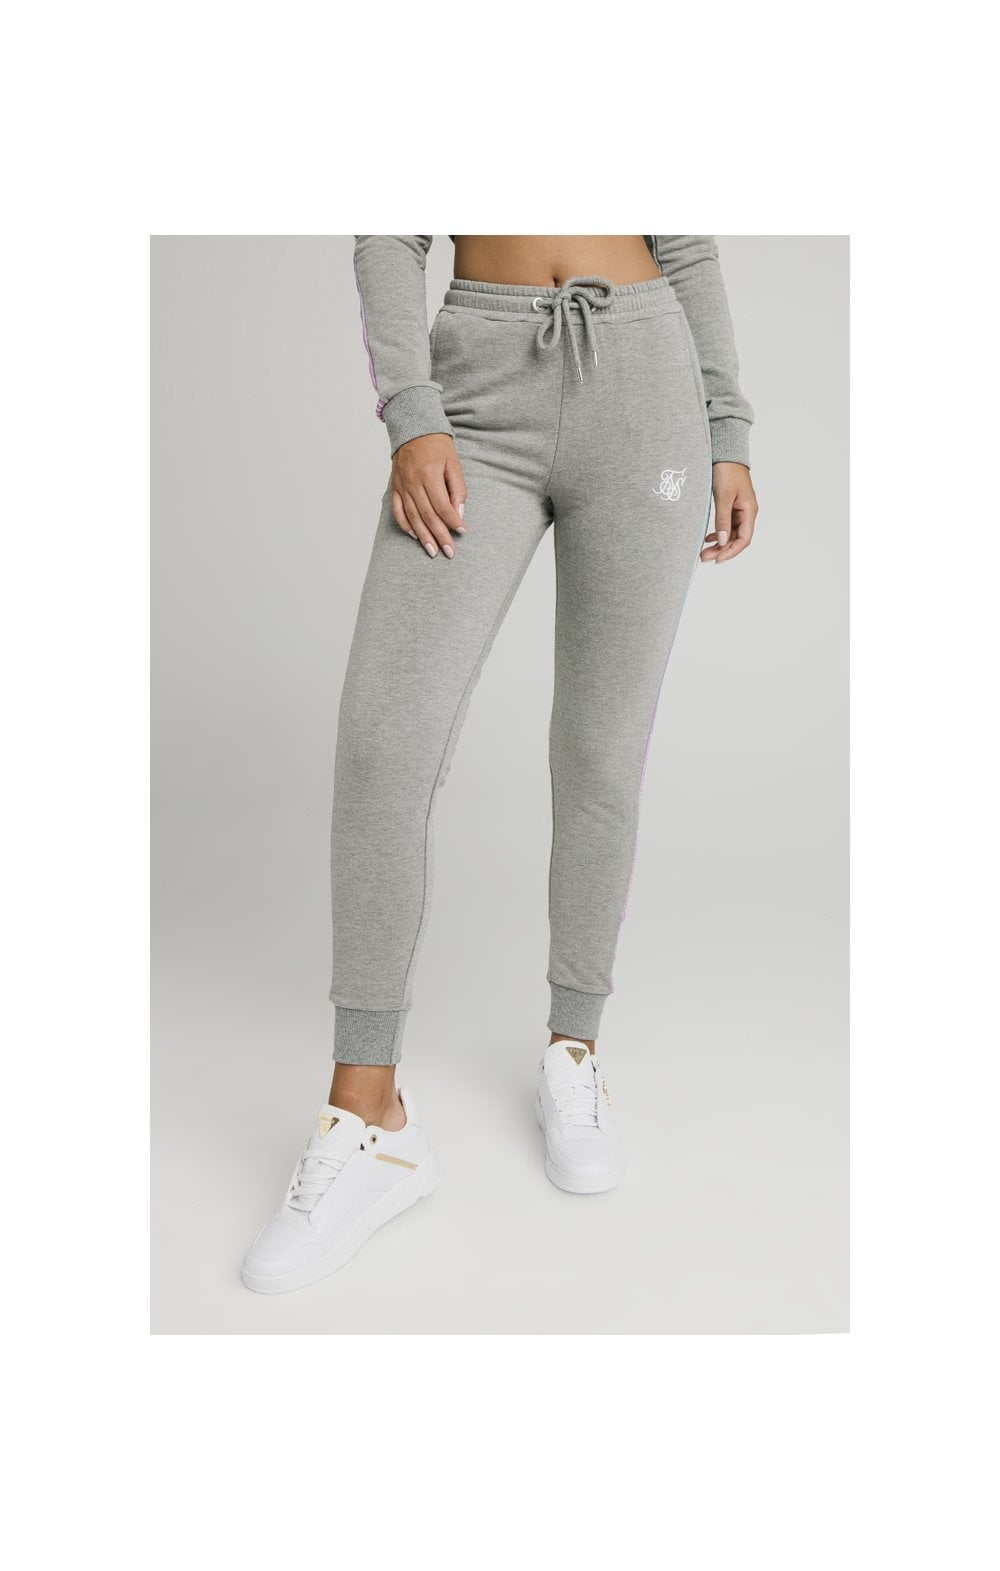 Load image into Gallery viewer, SikSilk Fade Runner Track Pants ��� Grey Marl (6)